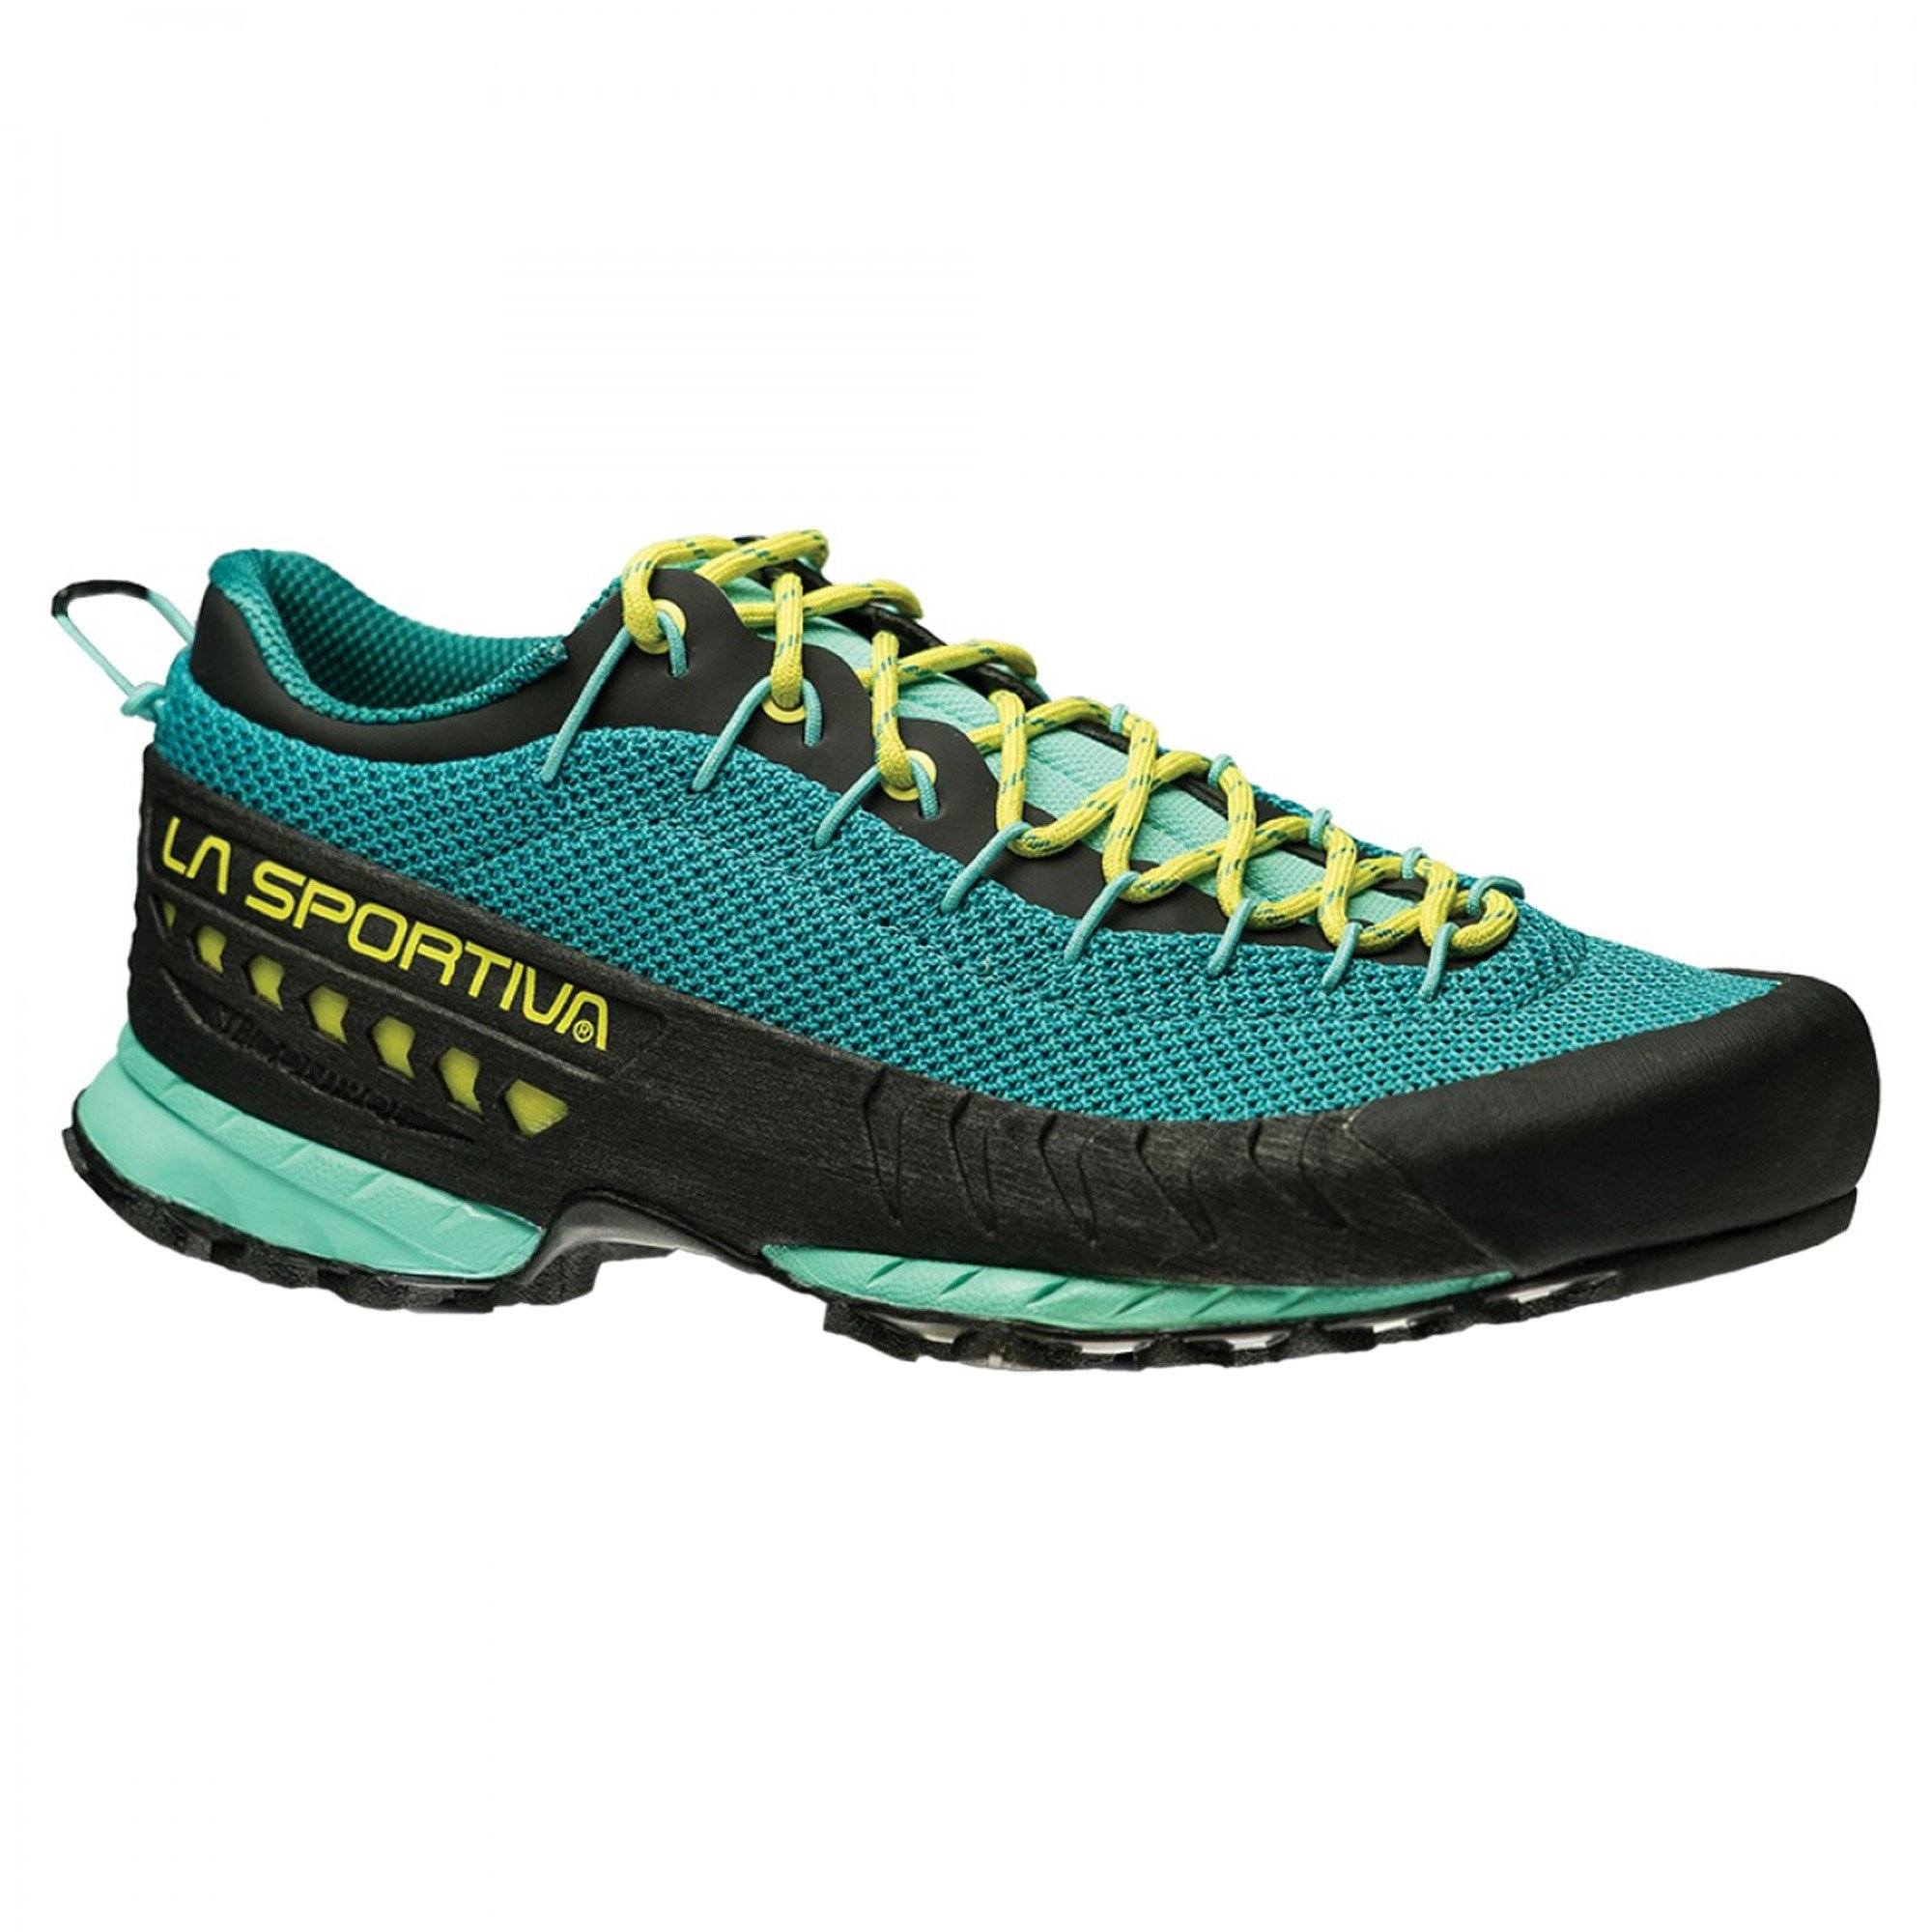 La Sportiva TX3 Shoe - Women's Emerald / Mint 37.5